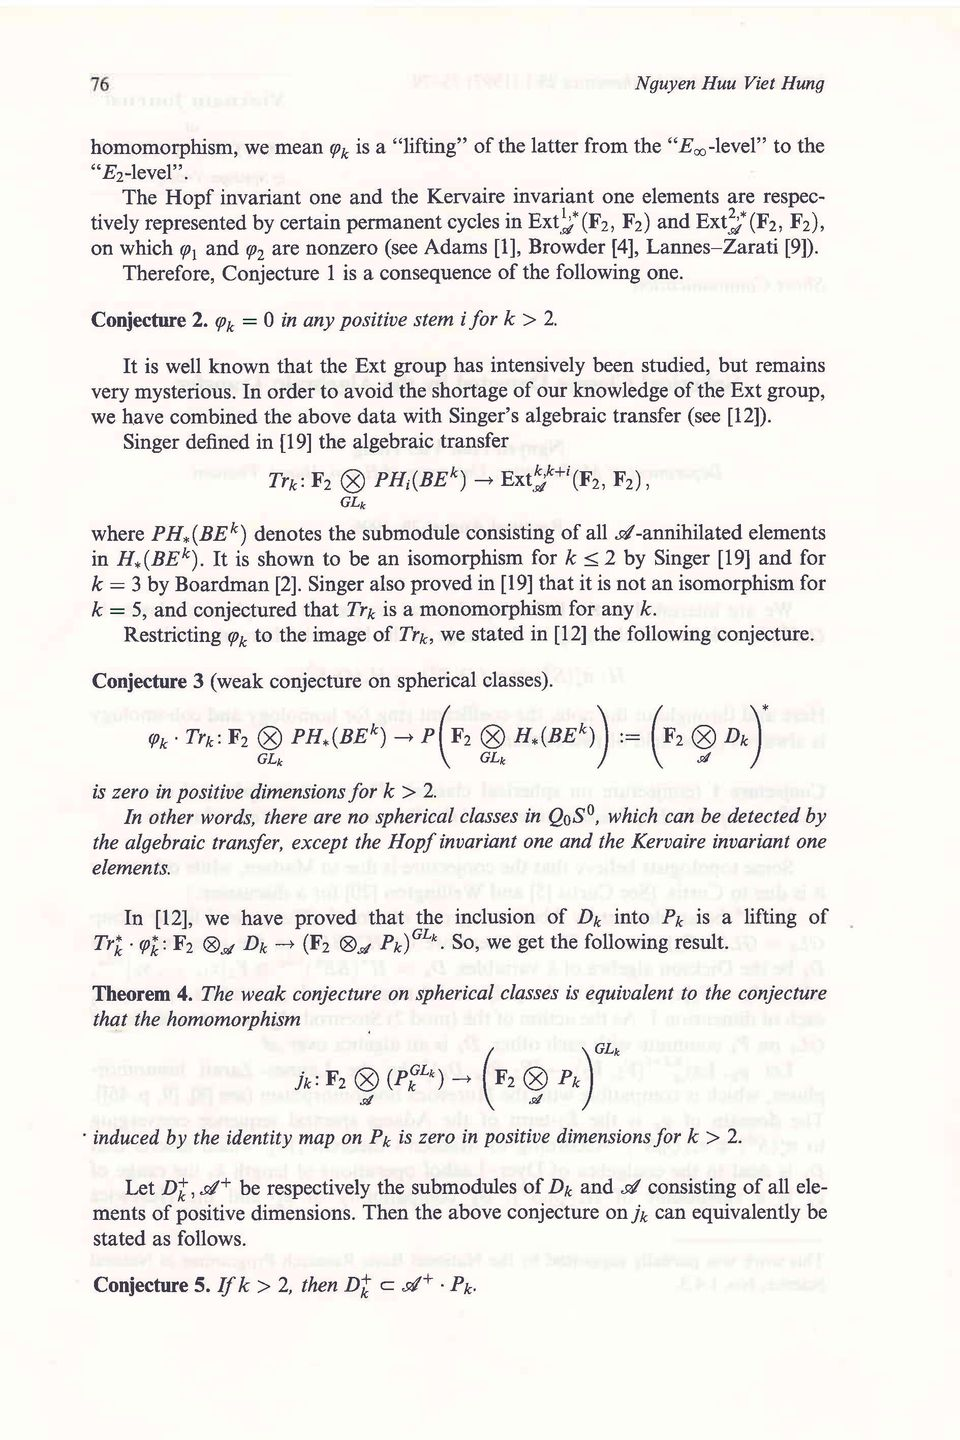 [1], Browder [4], Lannes-Zaratil9l). Therefore, Conjecture I is a consequence of the following one. Coniecture 2. et :0 in any positiue stem i for k > 2.